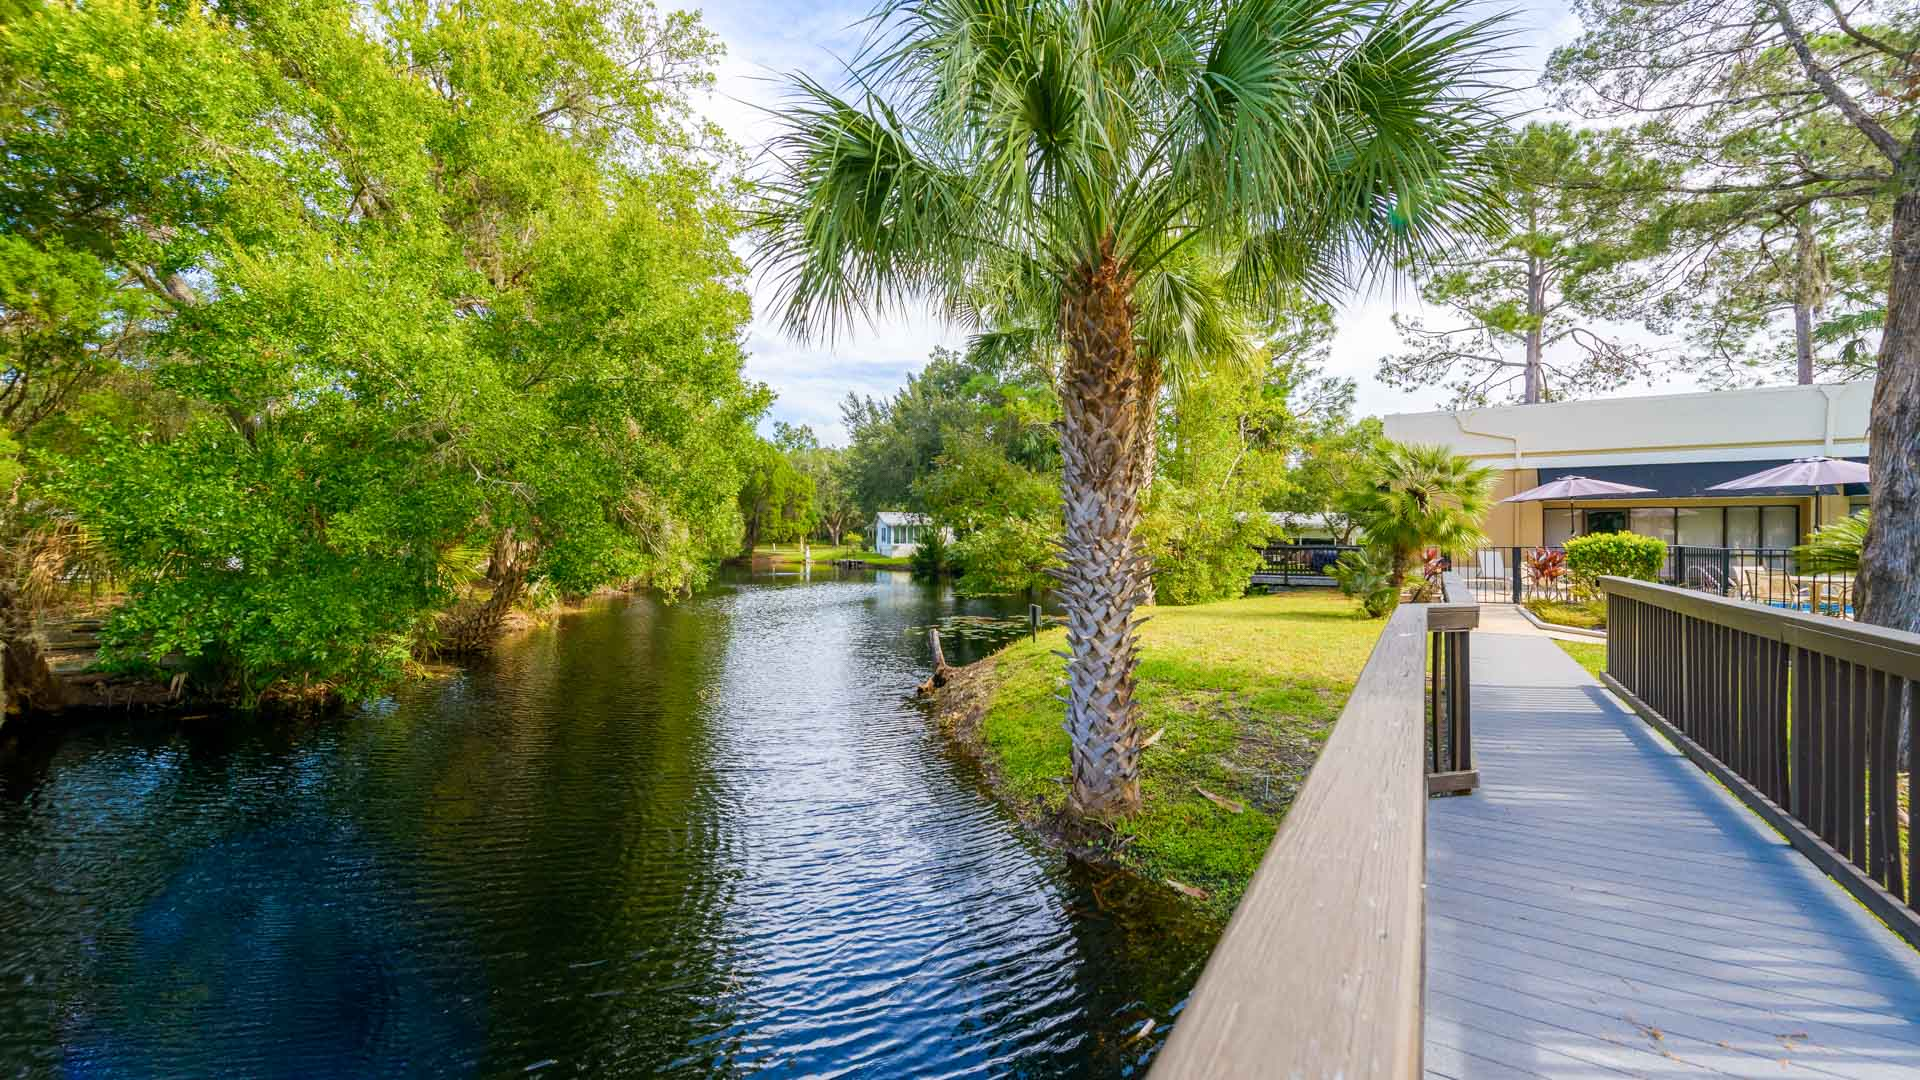 Stonebrook 55+ Manufactured Homes Community Foot Bridge in Homosassa, FL